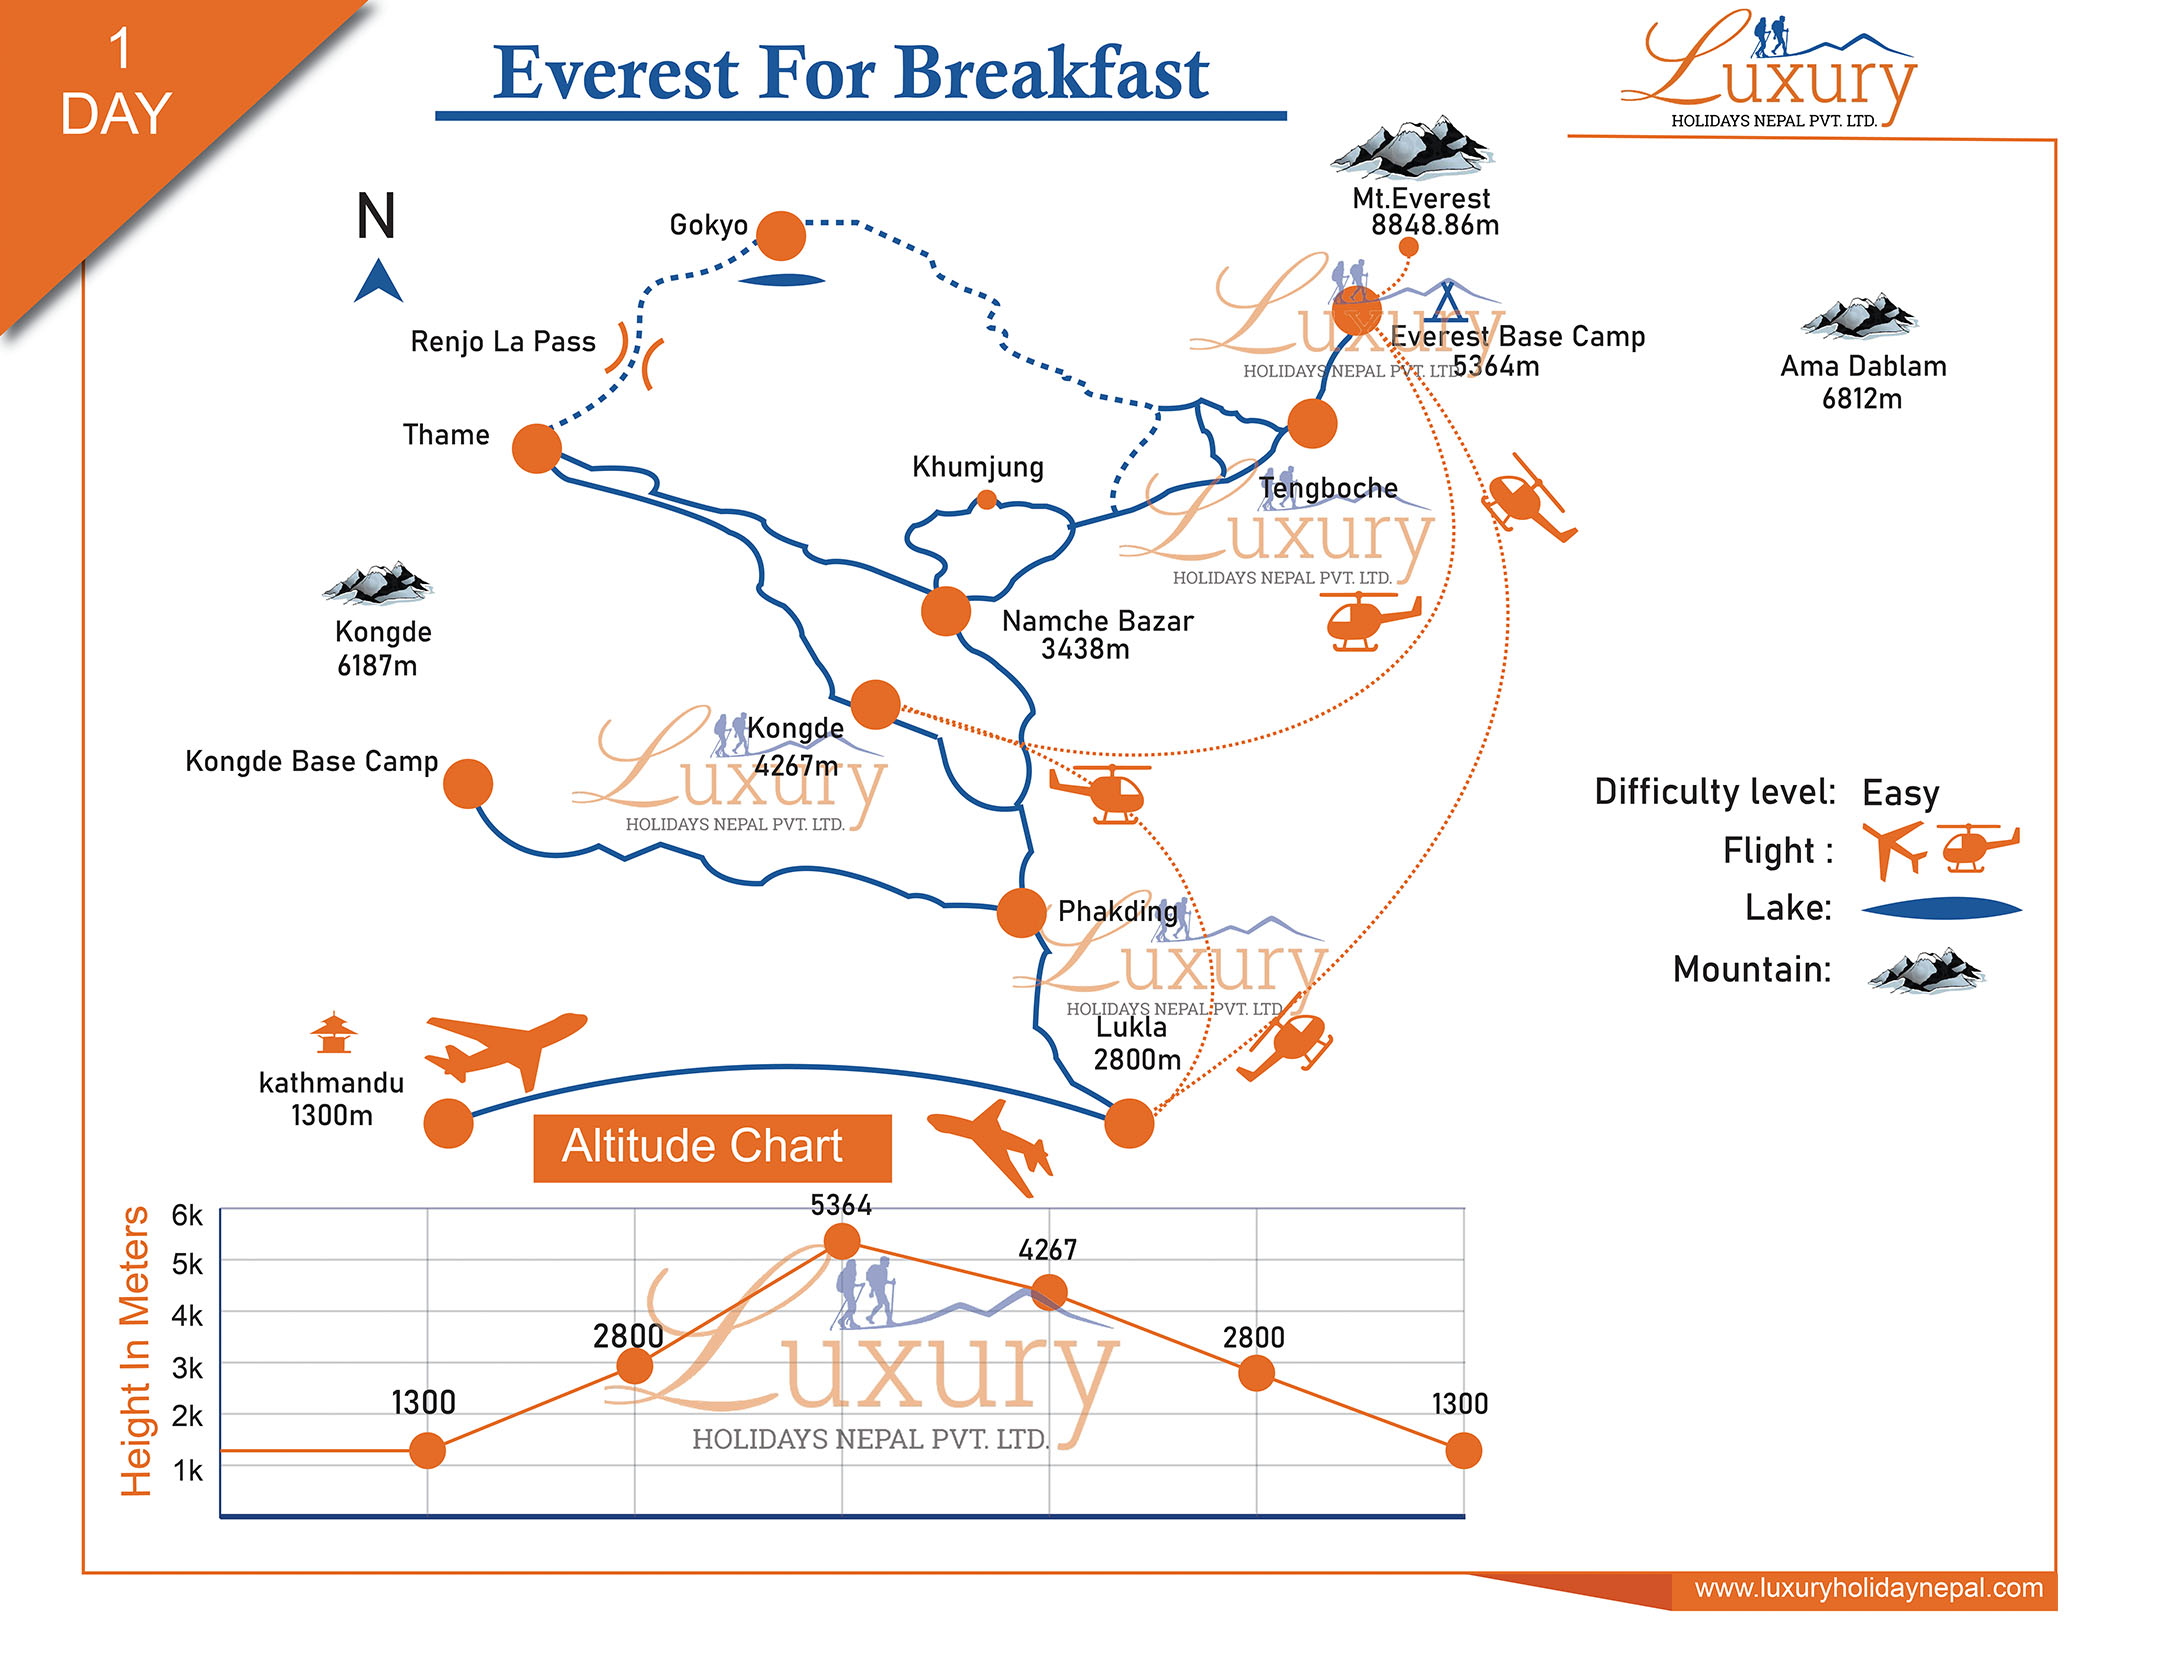 Everest for Breakfast Trip Map